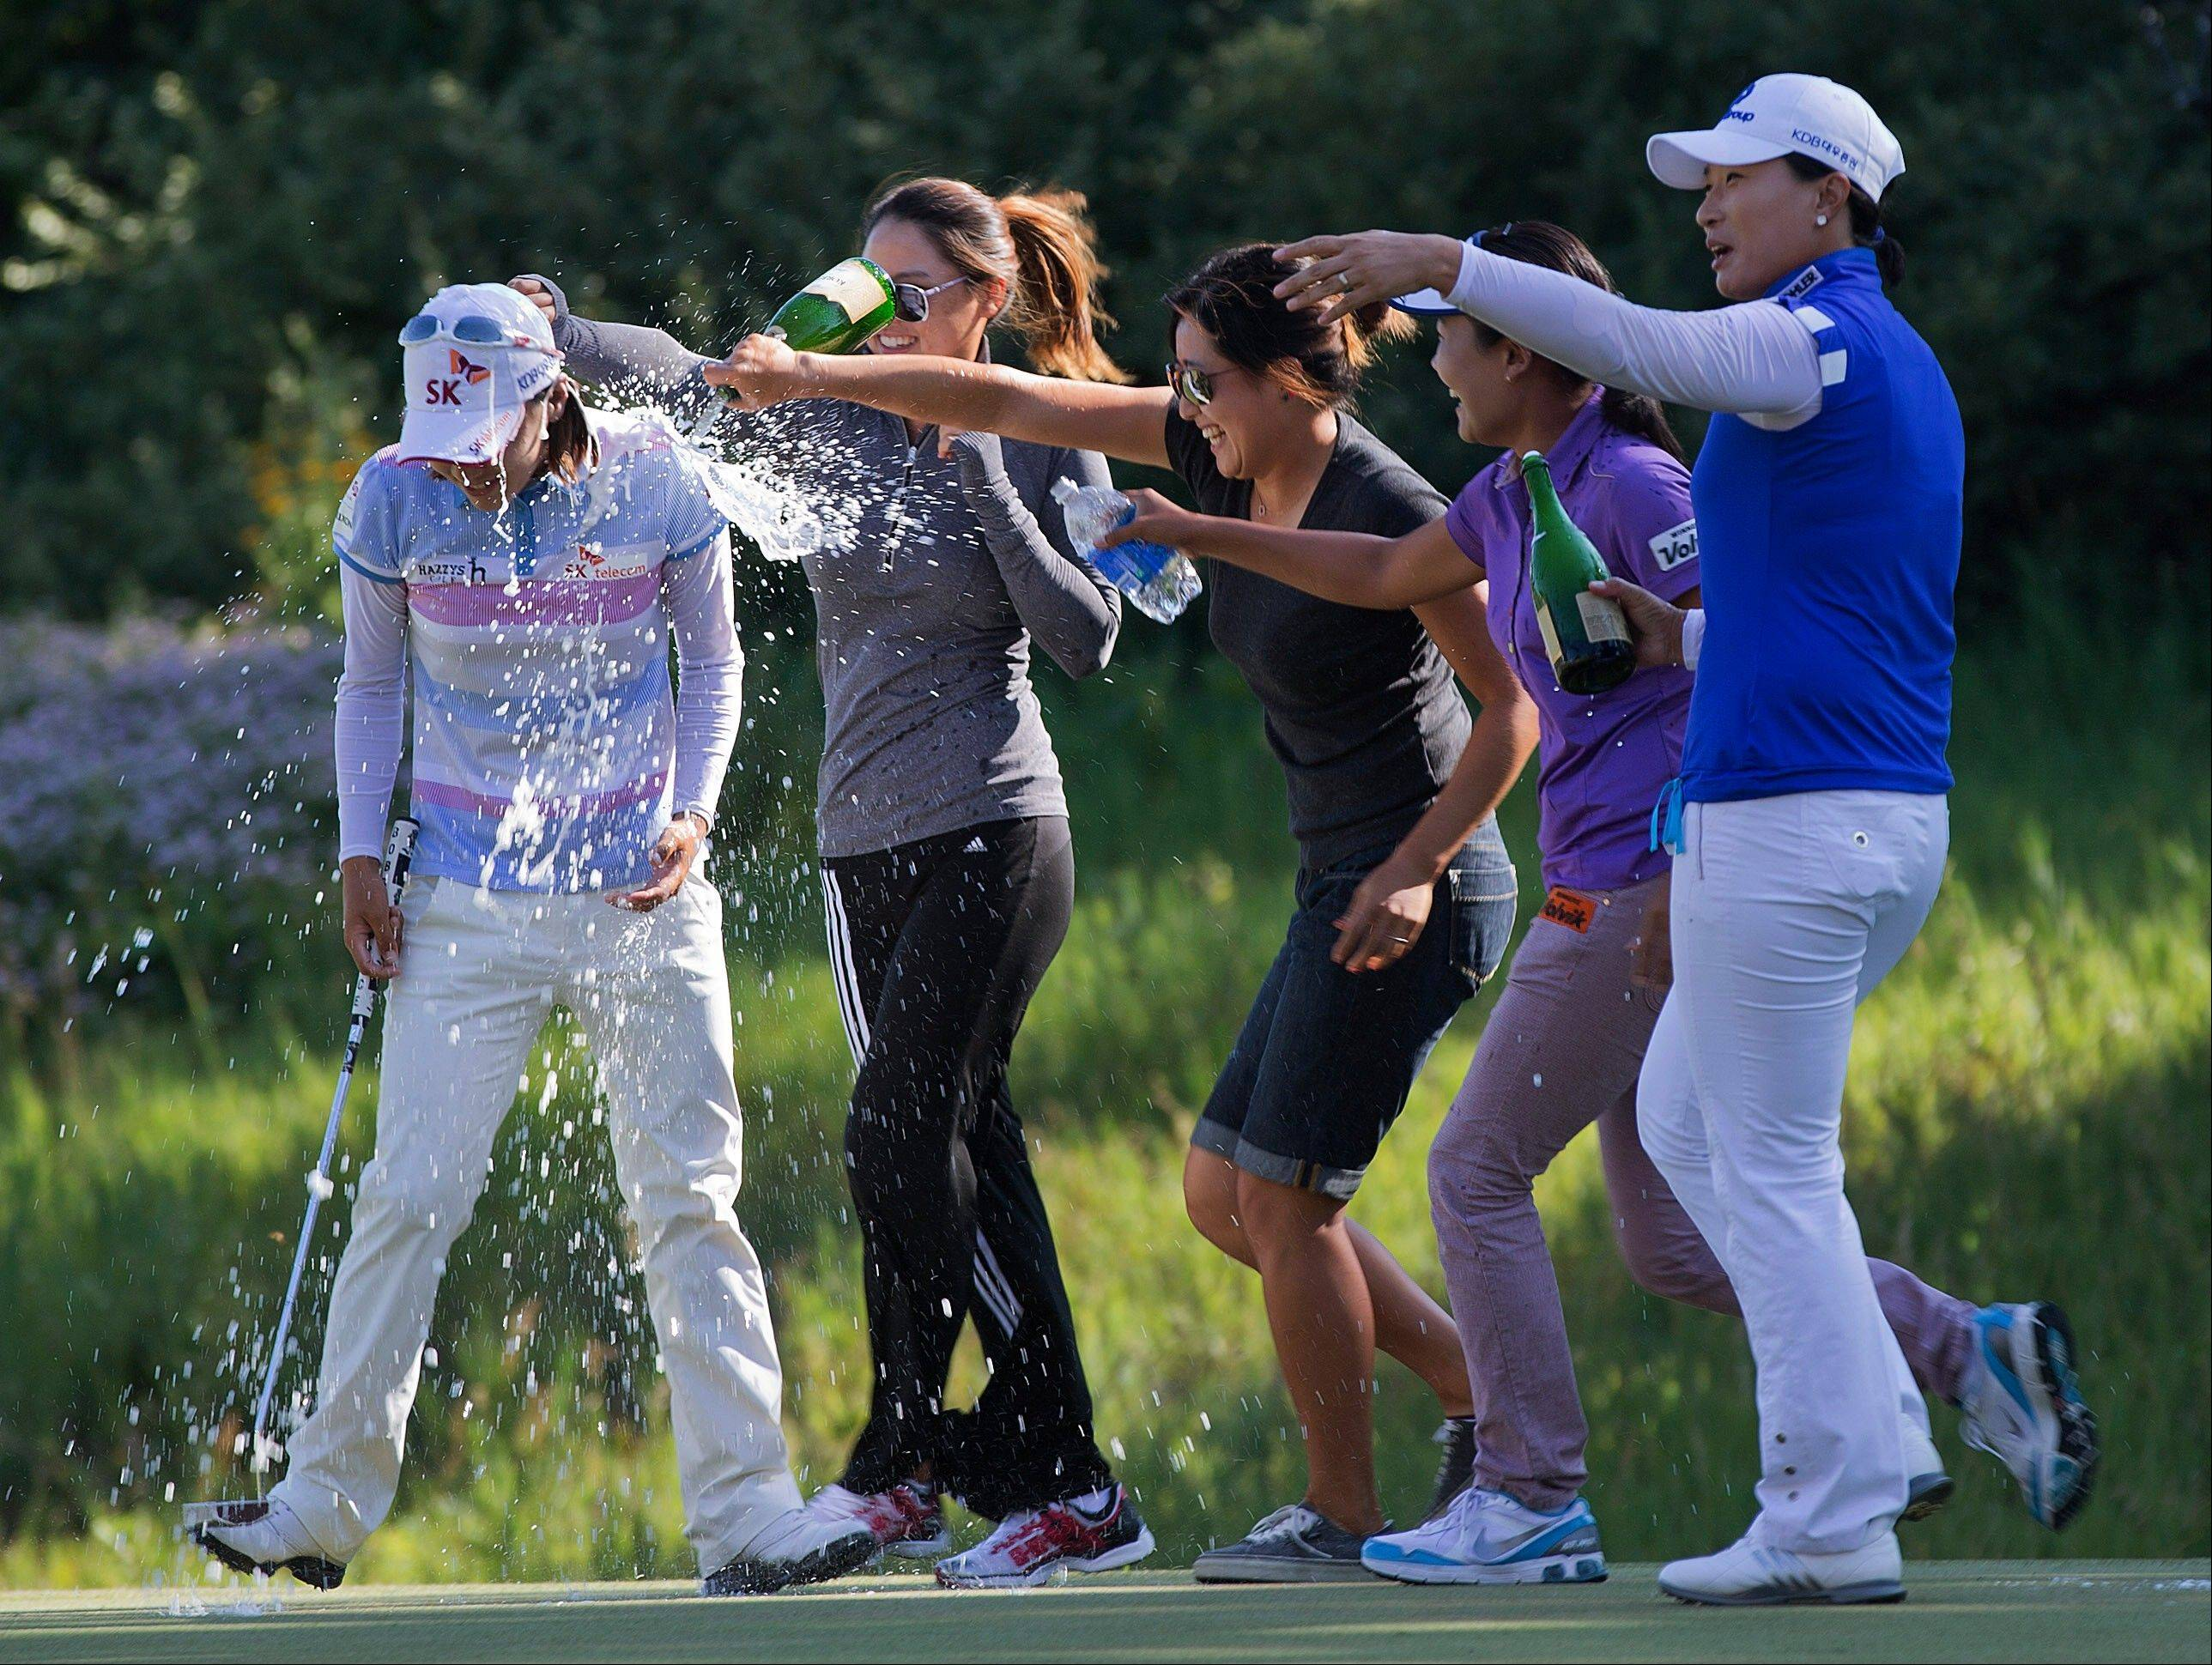 South Korea's Na Yeon Choi, far left, is doused by Se Ri Pak, far right, and others after winning the U.S. Women's Open on Sunday in Kohler, Wis.